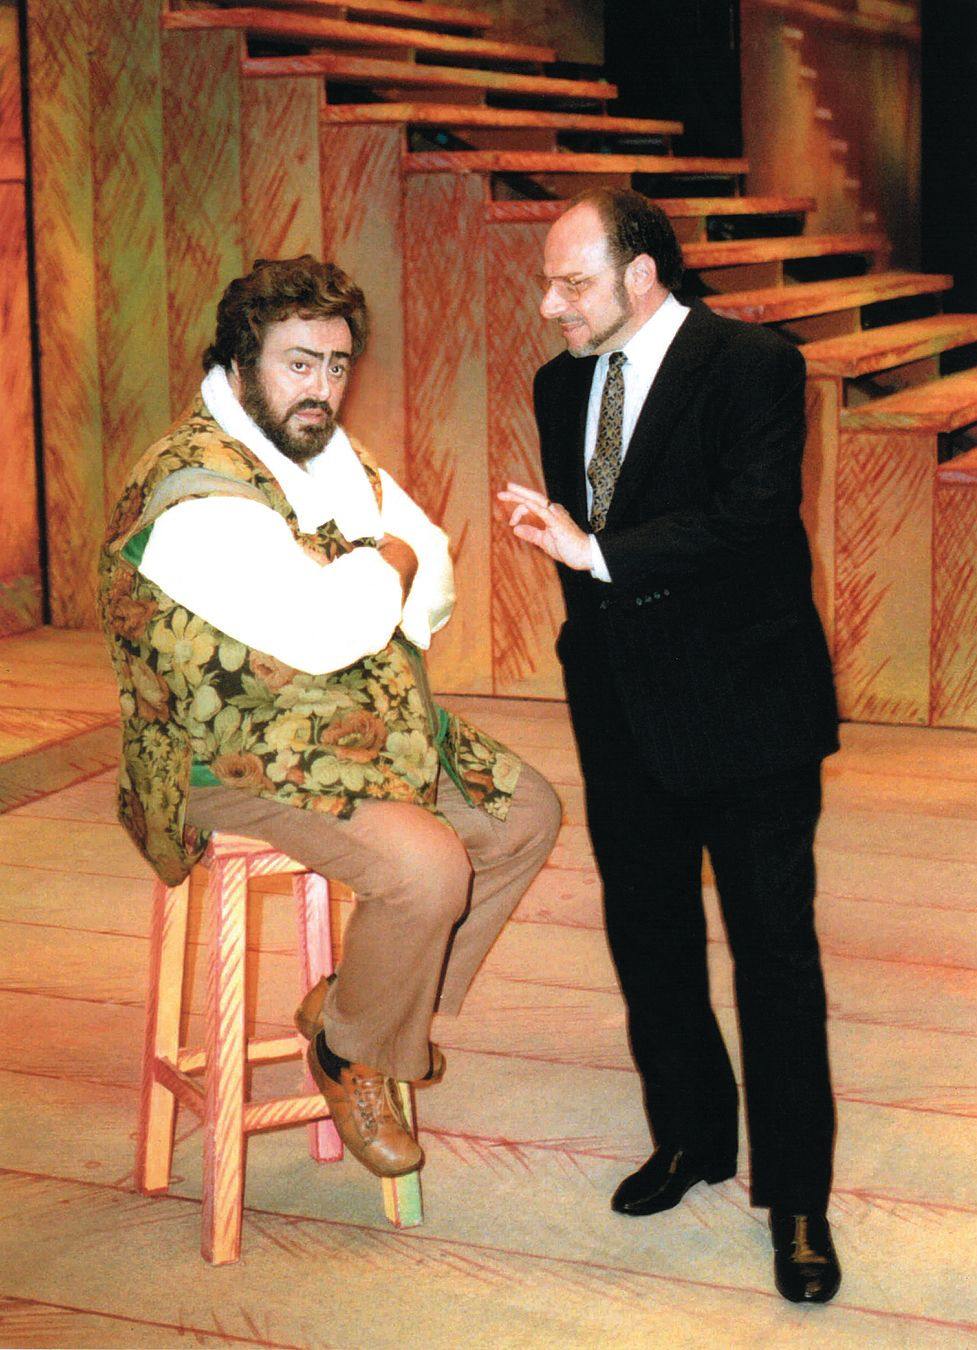 Joseph volpe and luciano pavarotti on stage at the metropolitan opera hby0lj